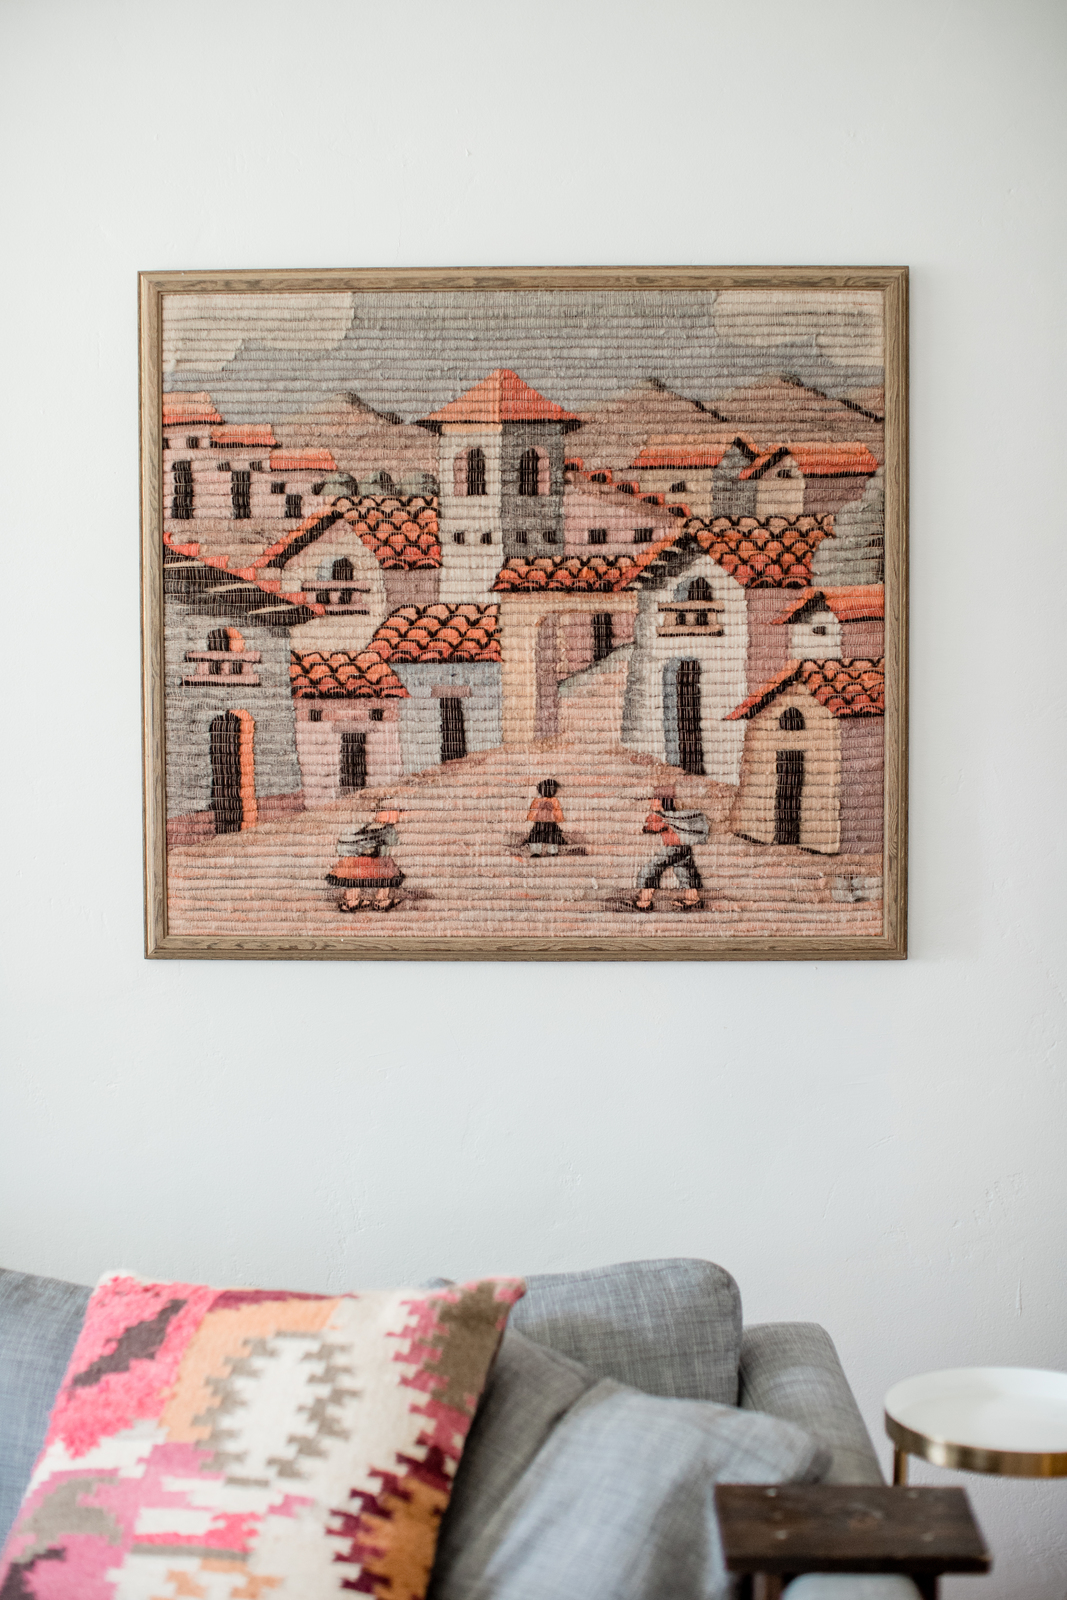 woven wall art of small town with tiled roofs